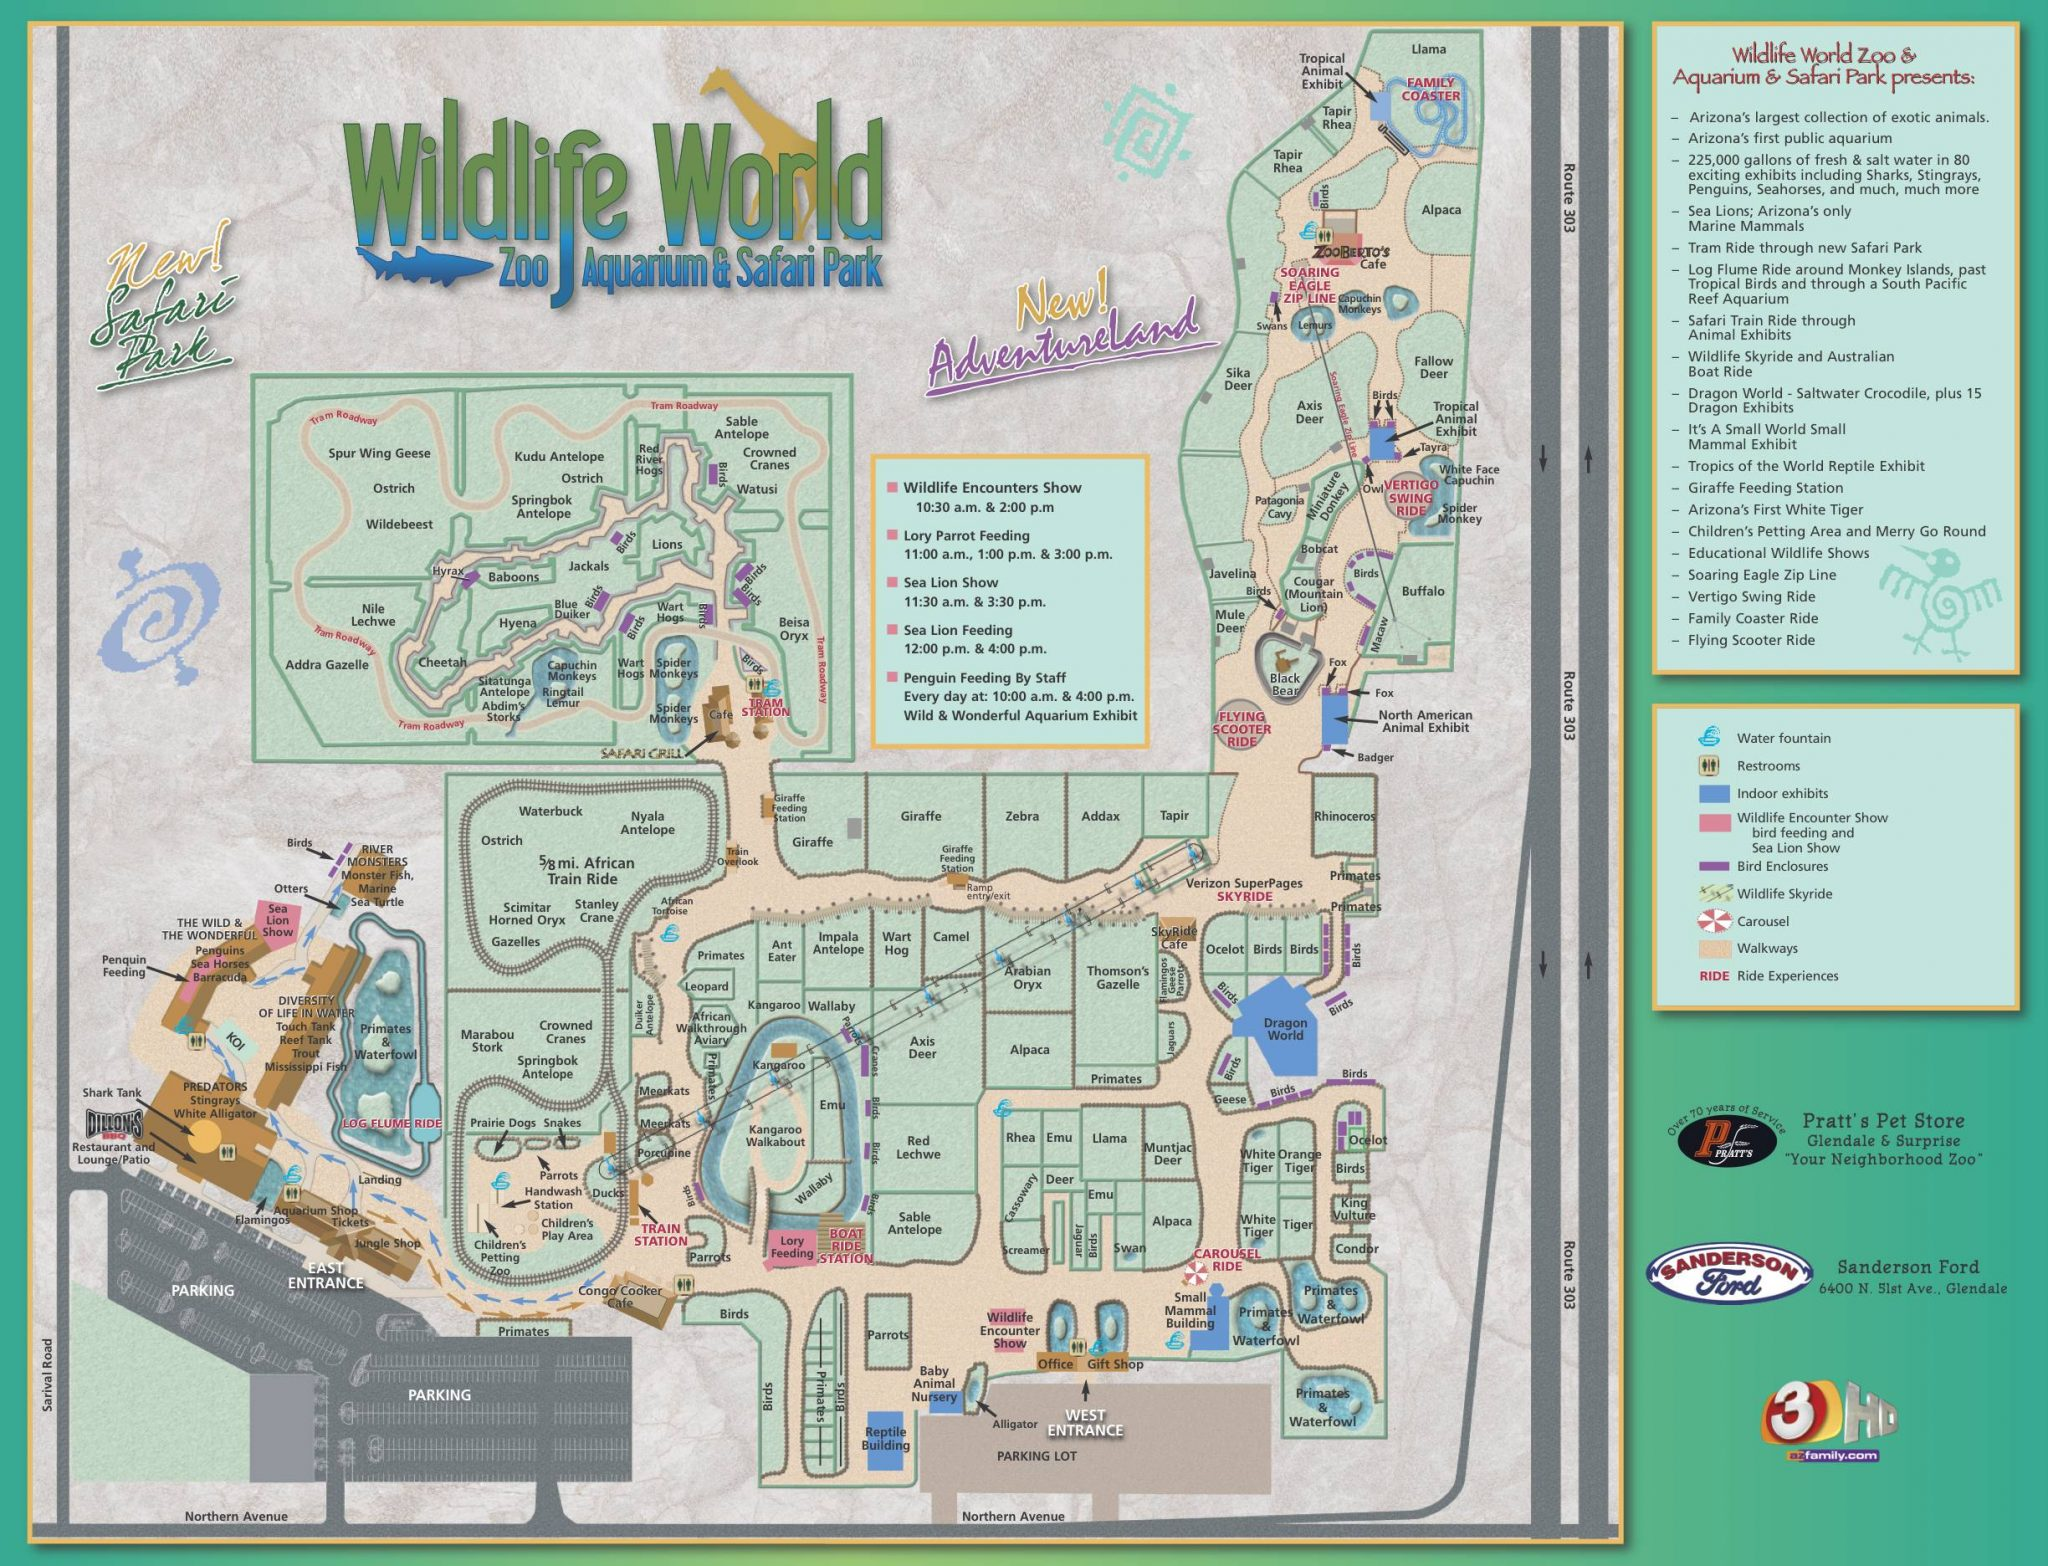 Wild life world zoo coupons